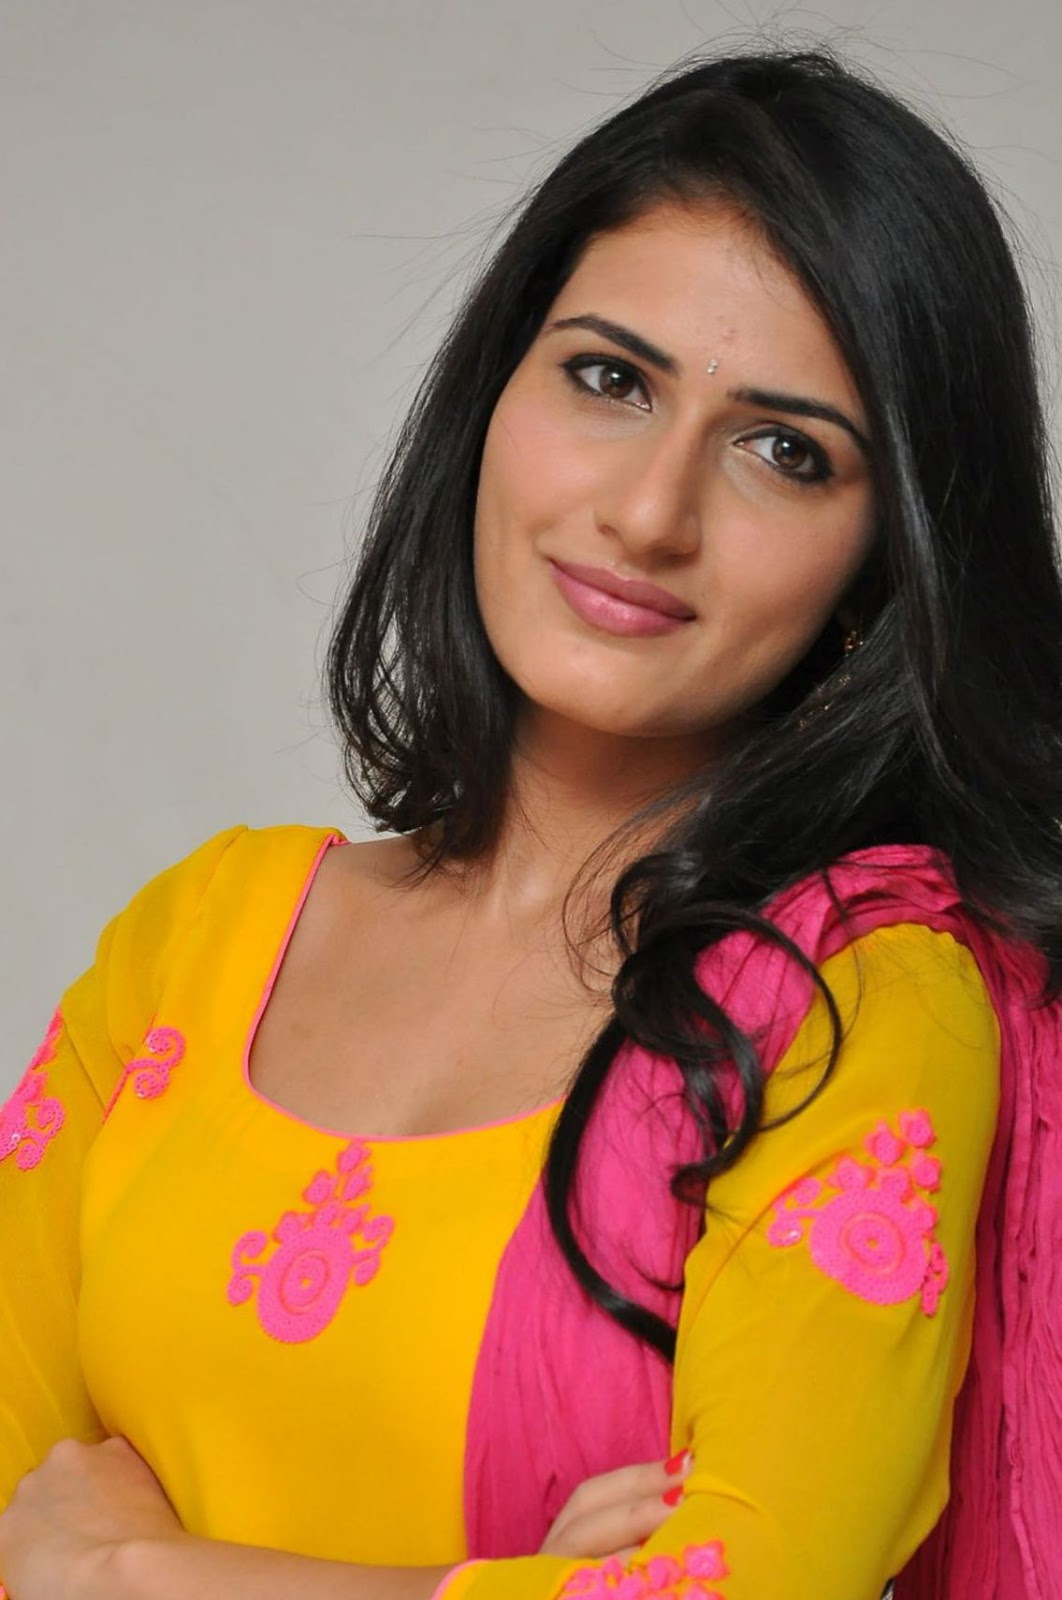 sana actress telugu heroine film indian south latest appeared advertisements several career